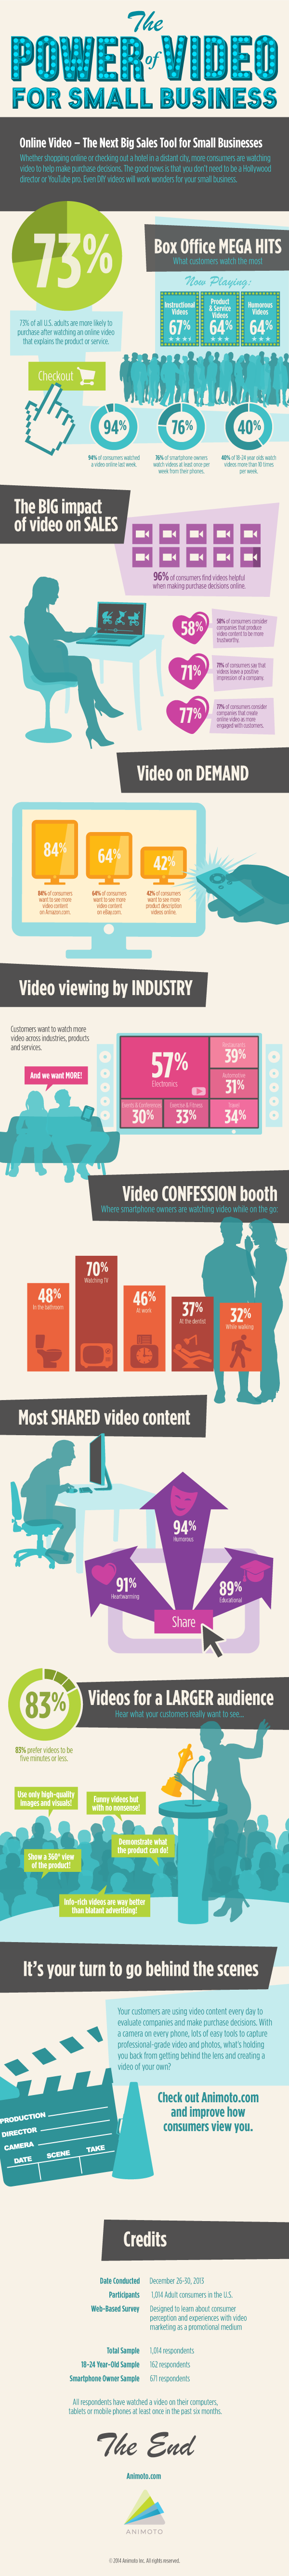 small-business-video-infographic